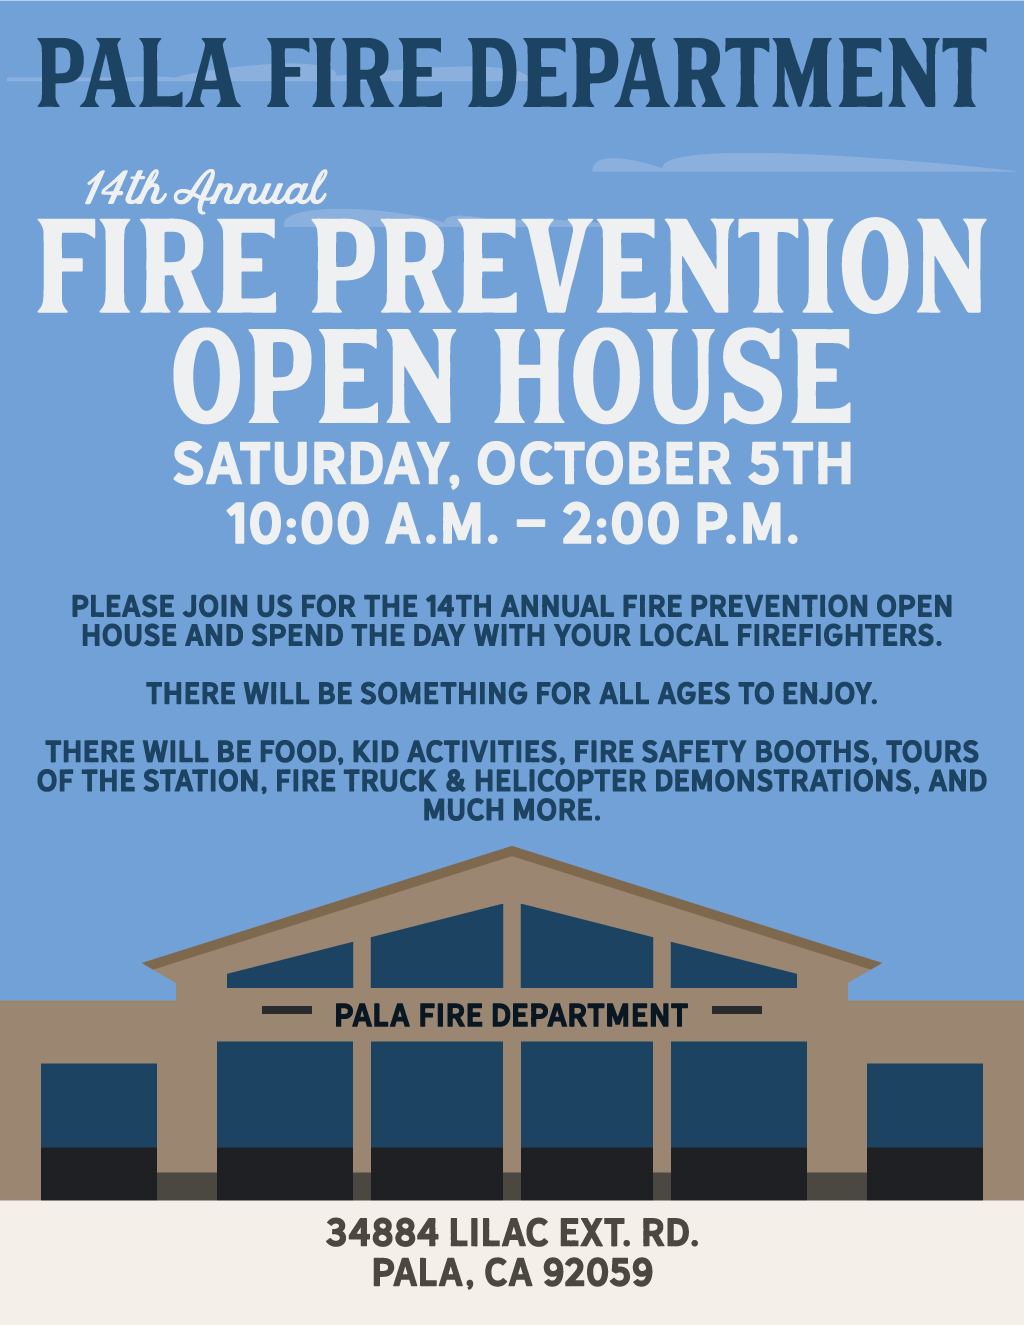 Pala Band of Mission Indians Pala Fire Department Fire Prevention Open House